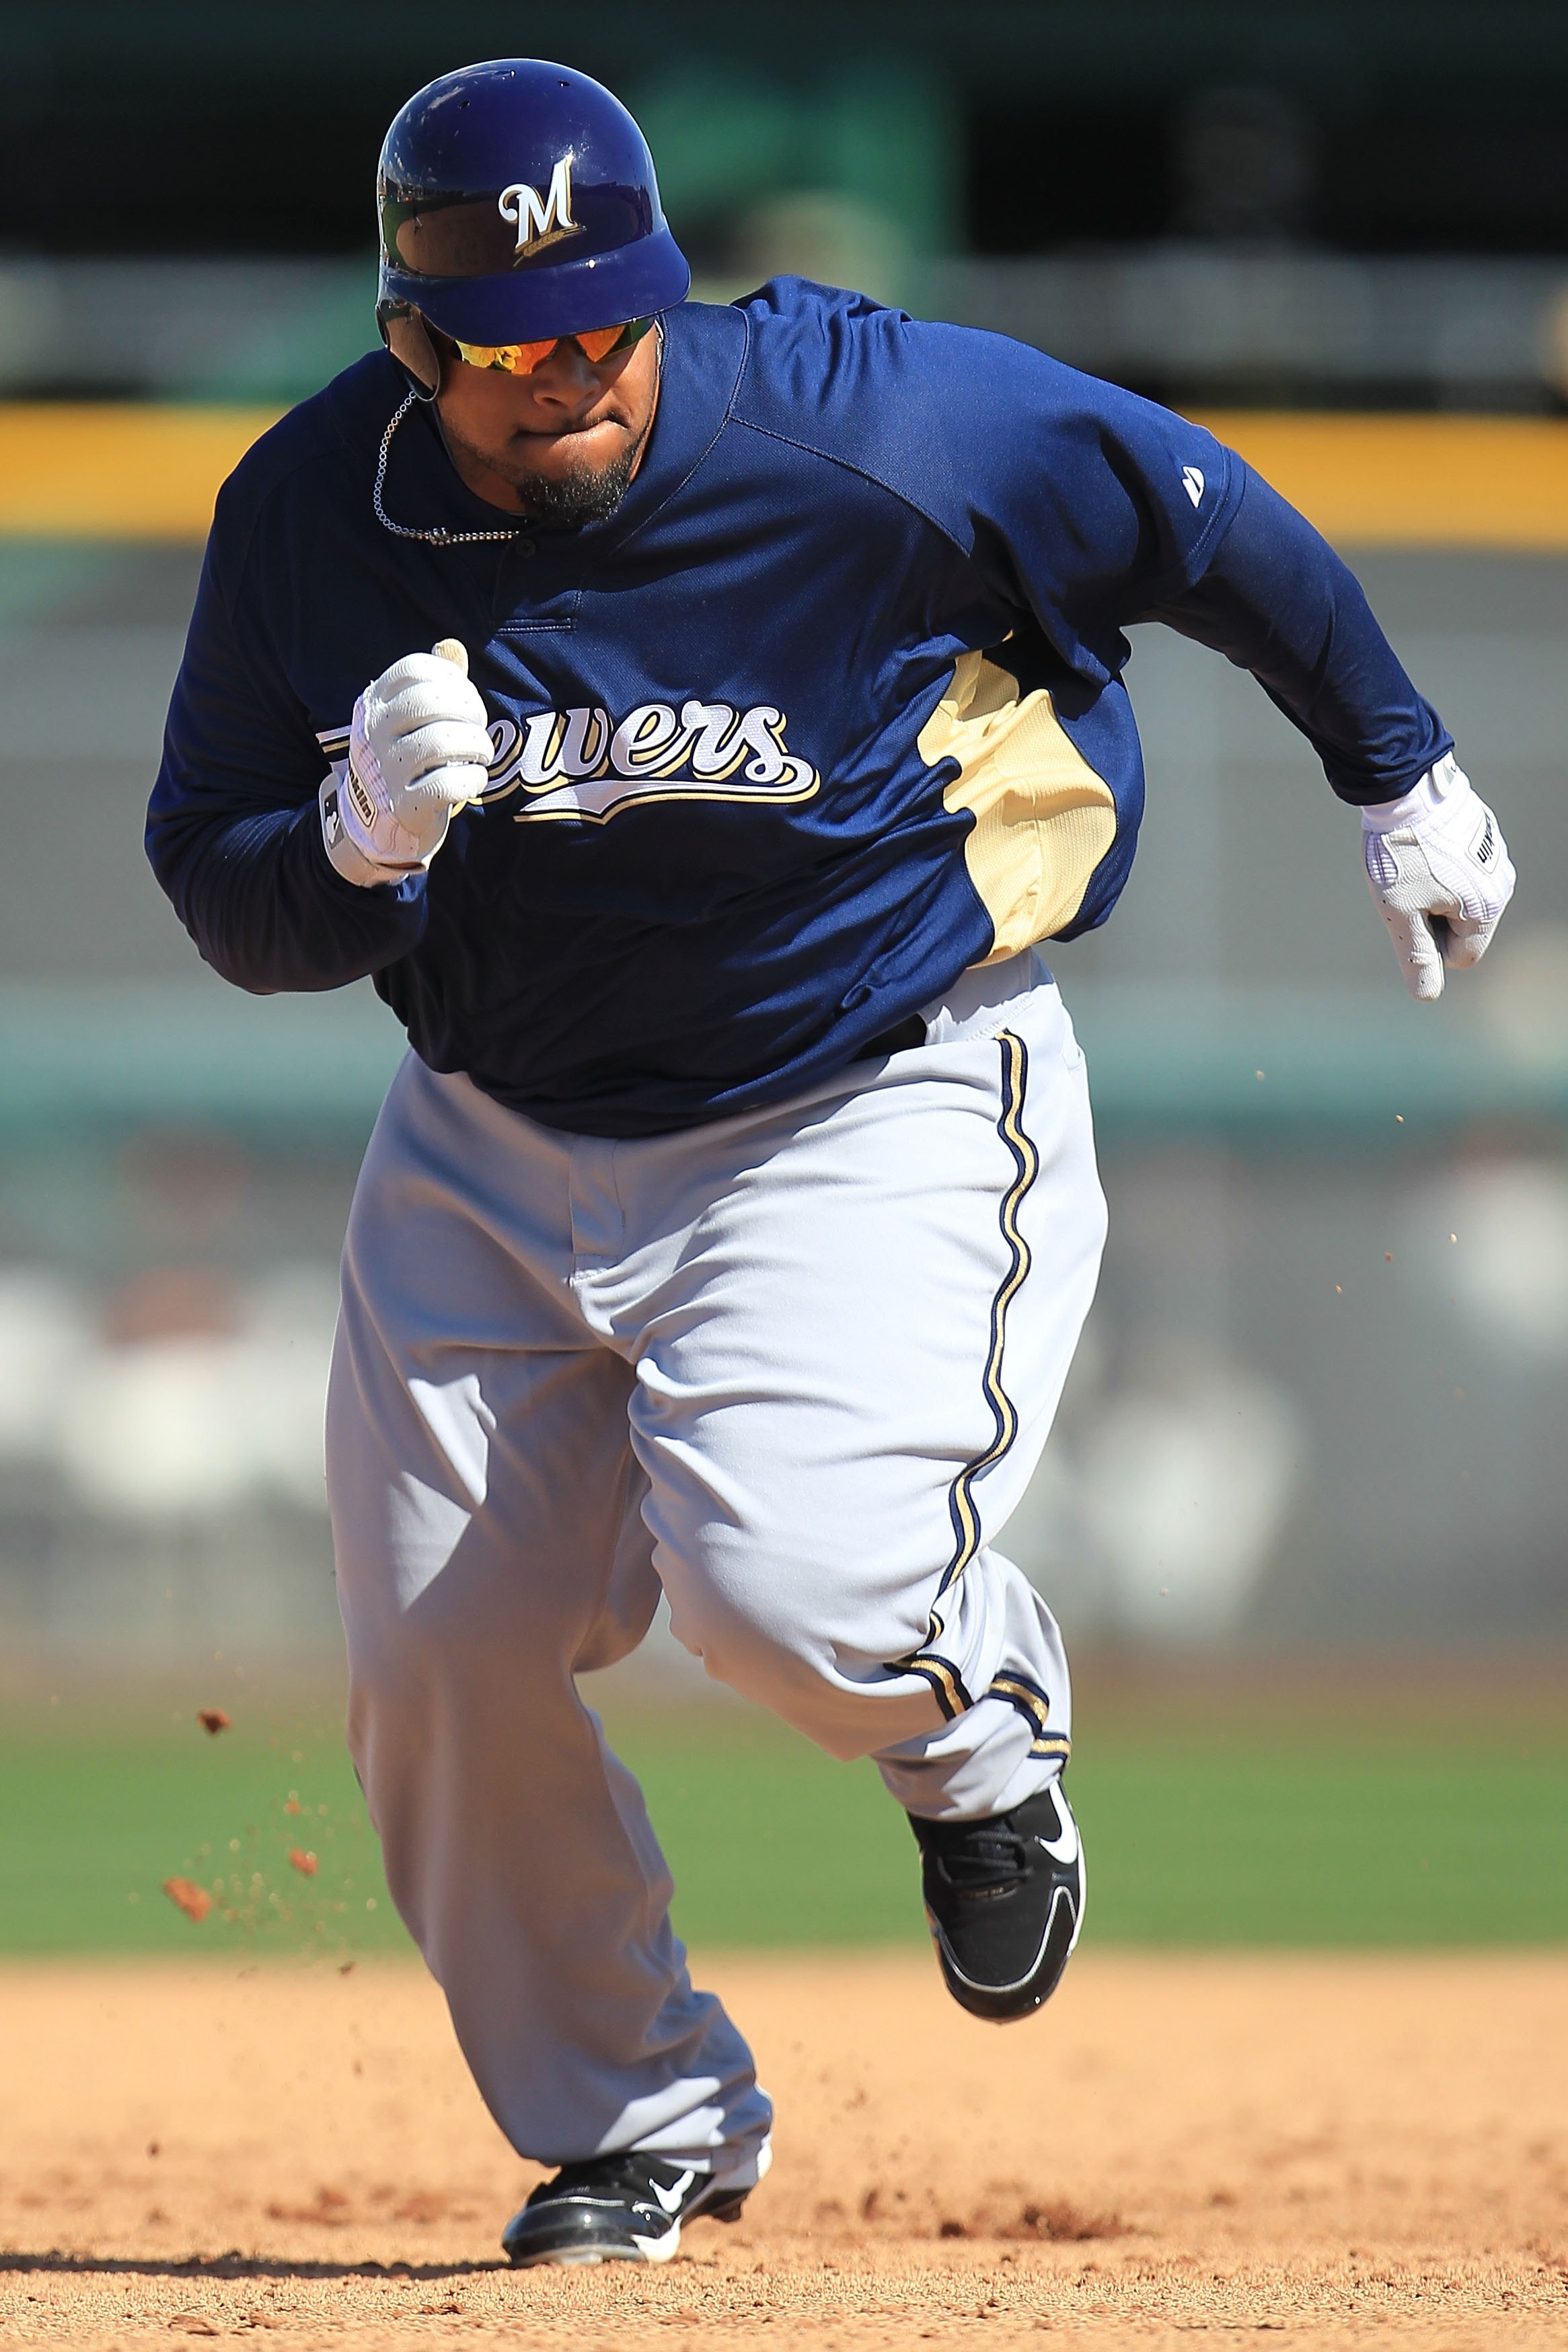 SCOTTSDALE, AZ - MARCH 04:  Prince Fielder #28 of the Milwaukee Brewers runs to third base against the San Francisco Giants during a spring training game at Scottsdale Stadium on March 4, 2010 in Scottsdale, Arizona.  (Photo by Chris McGrath/Getty Images)